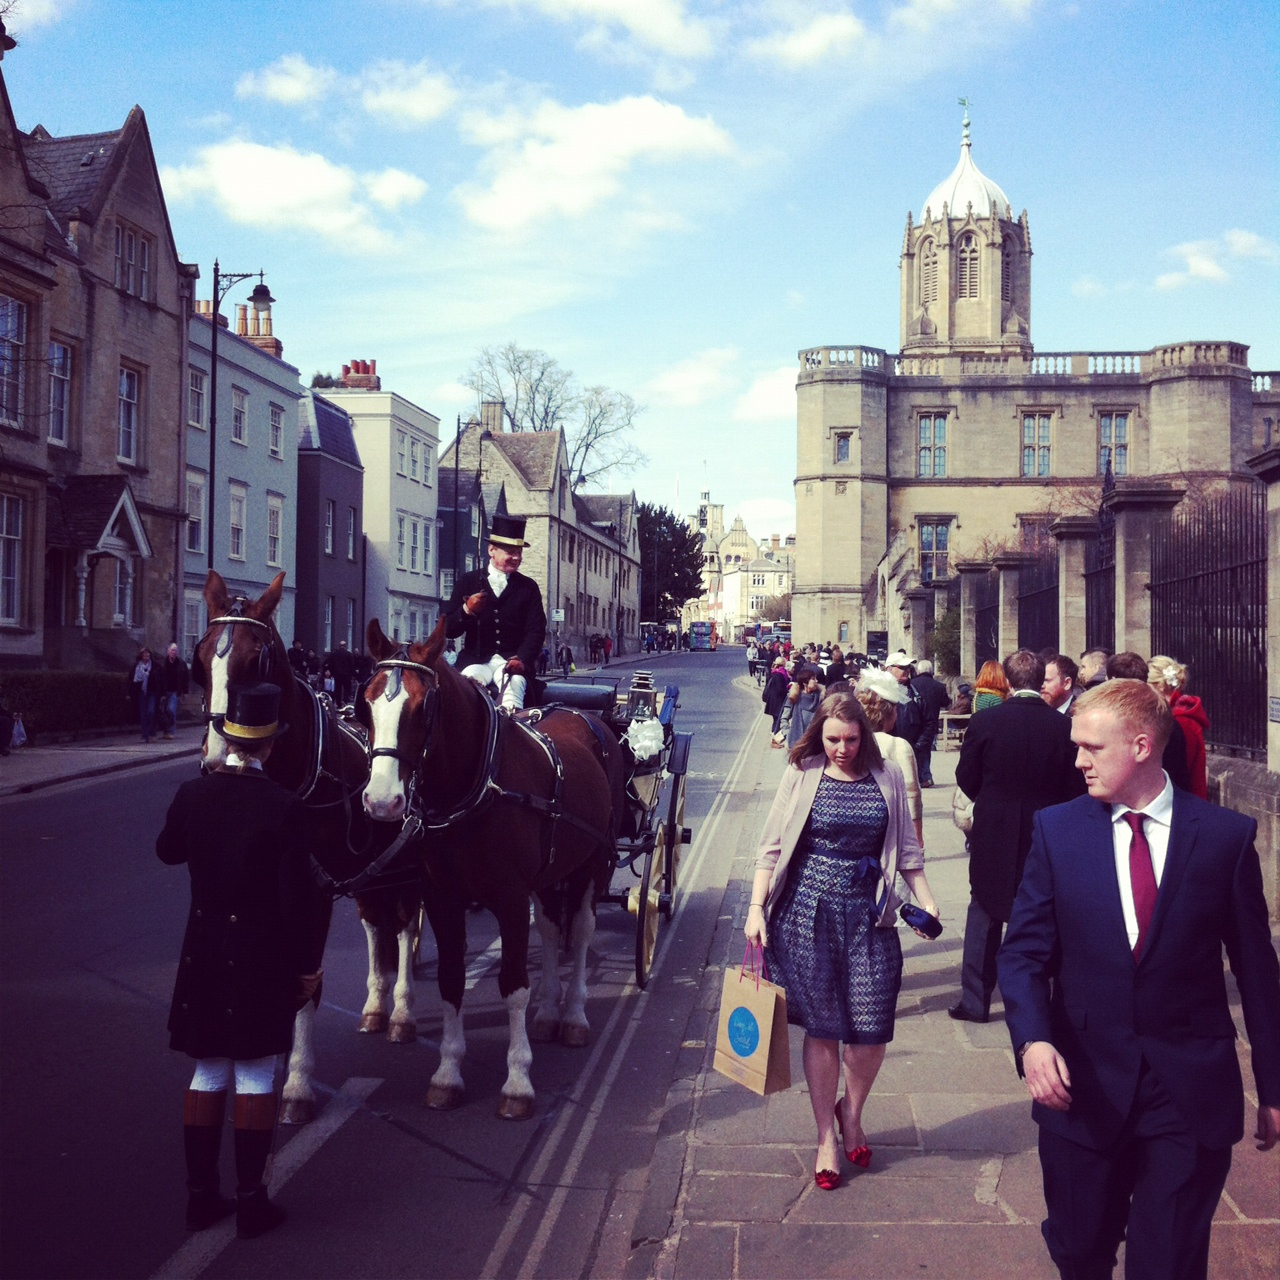 A horse and cart waiting to carry the bride and groom after their wedding at christchurch college oxford